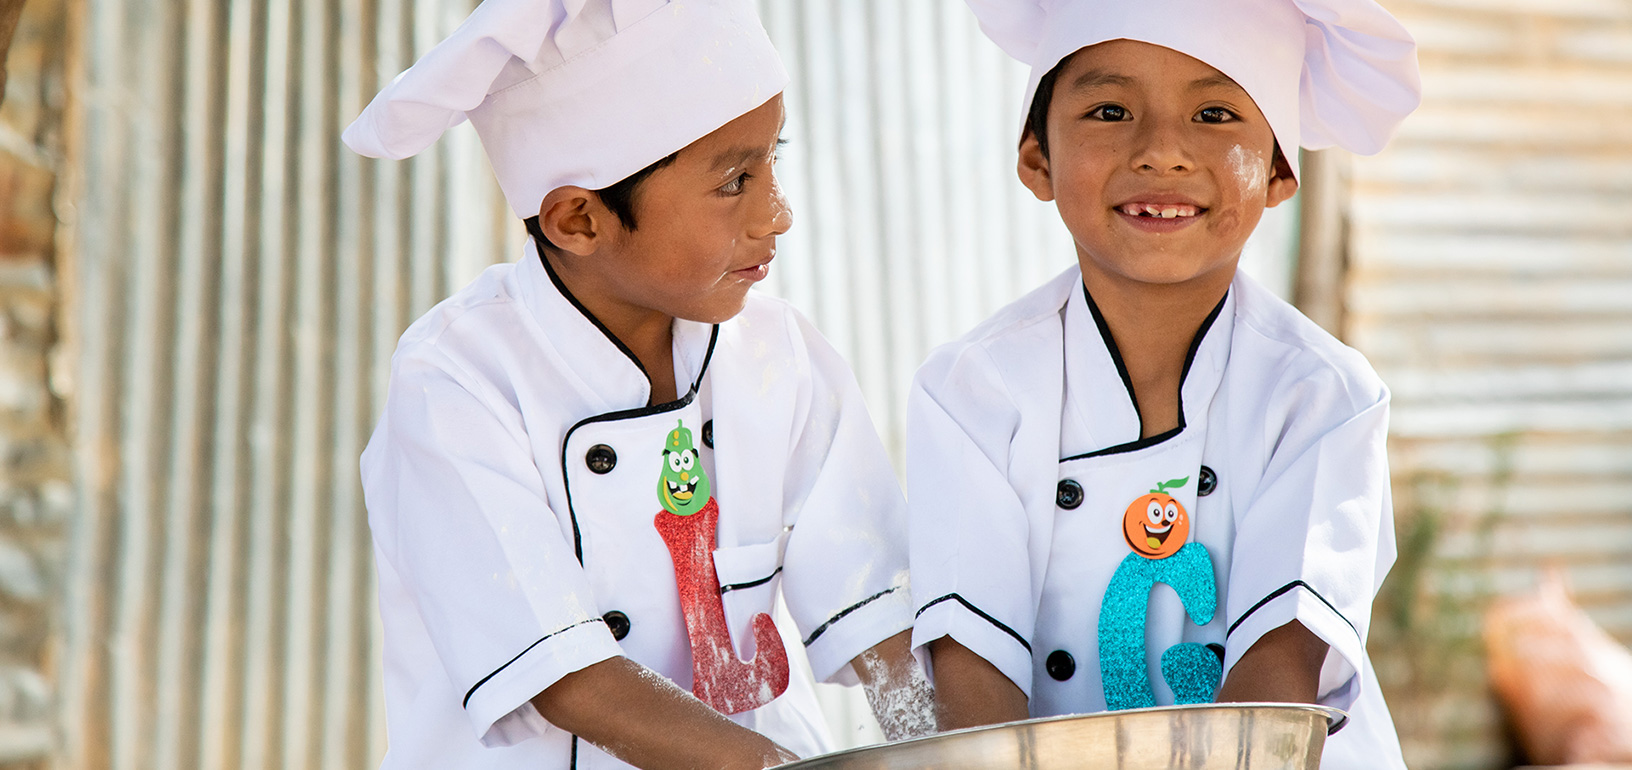 Gabriel and Leonal want to be chefs